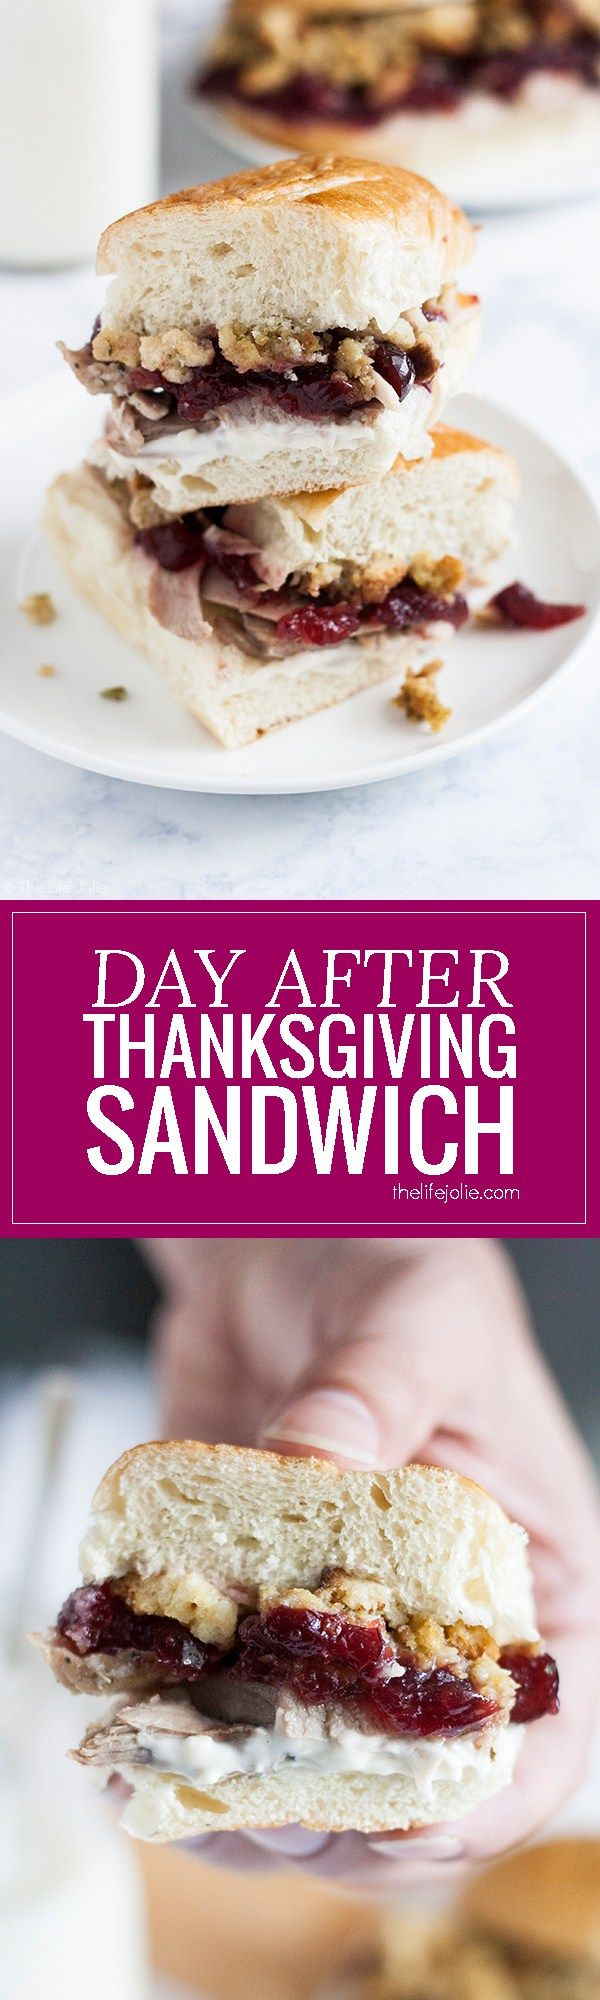 Day After Thanksgiving Stock Images, Royalty-Free Images ... |Day After Thanksgiving